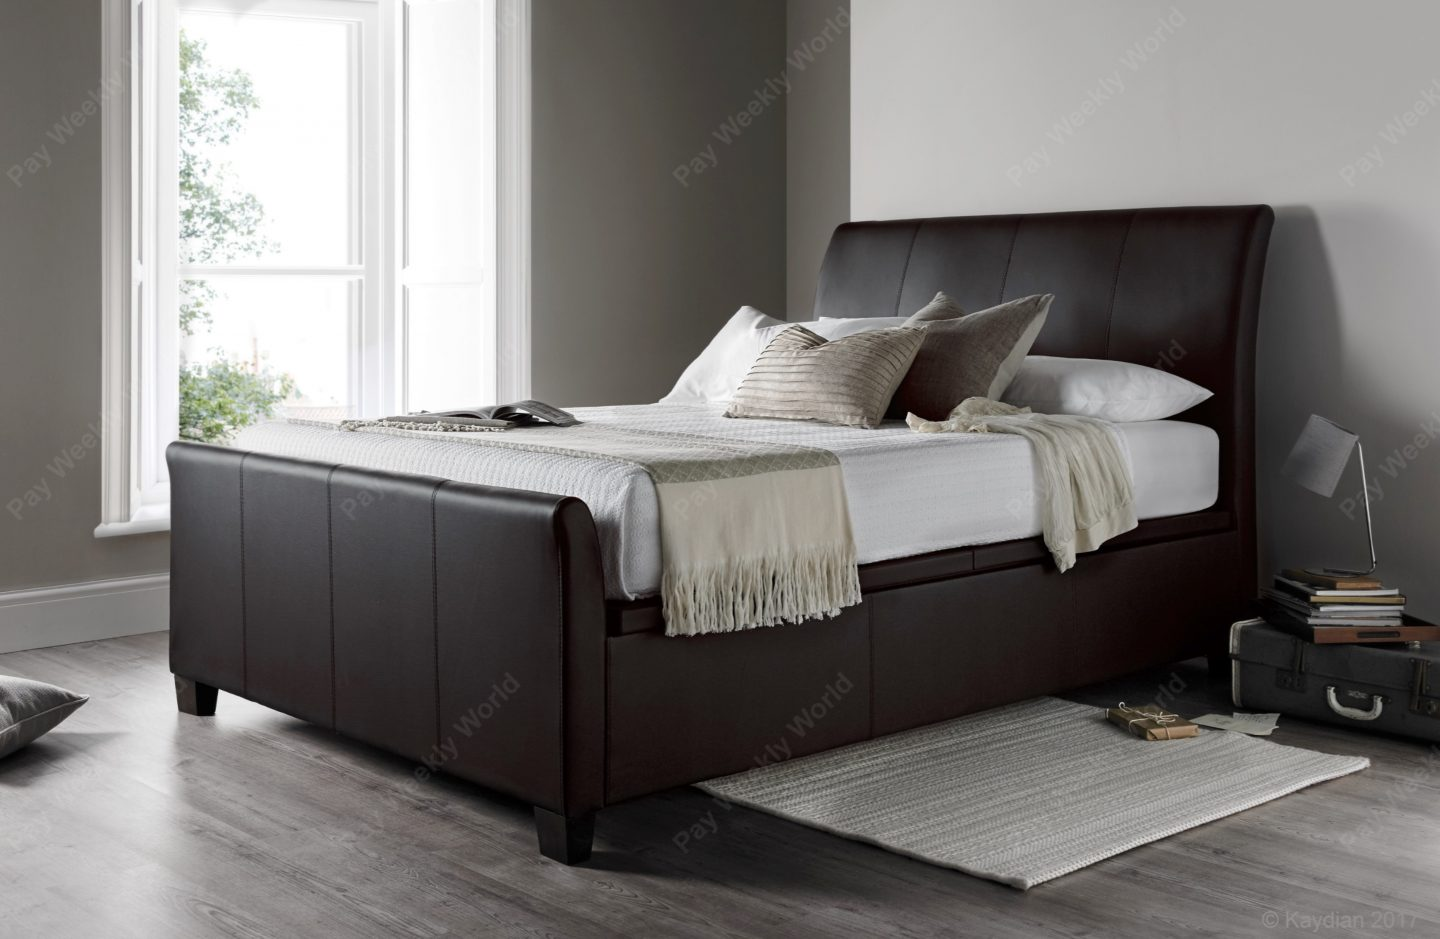 Allendale Ottoman Leather Bed Range - Brown